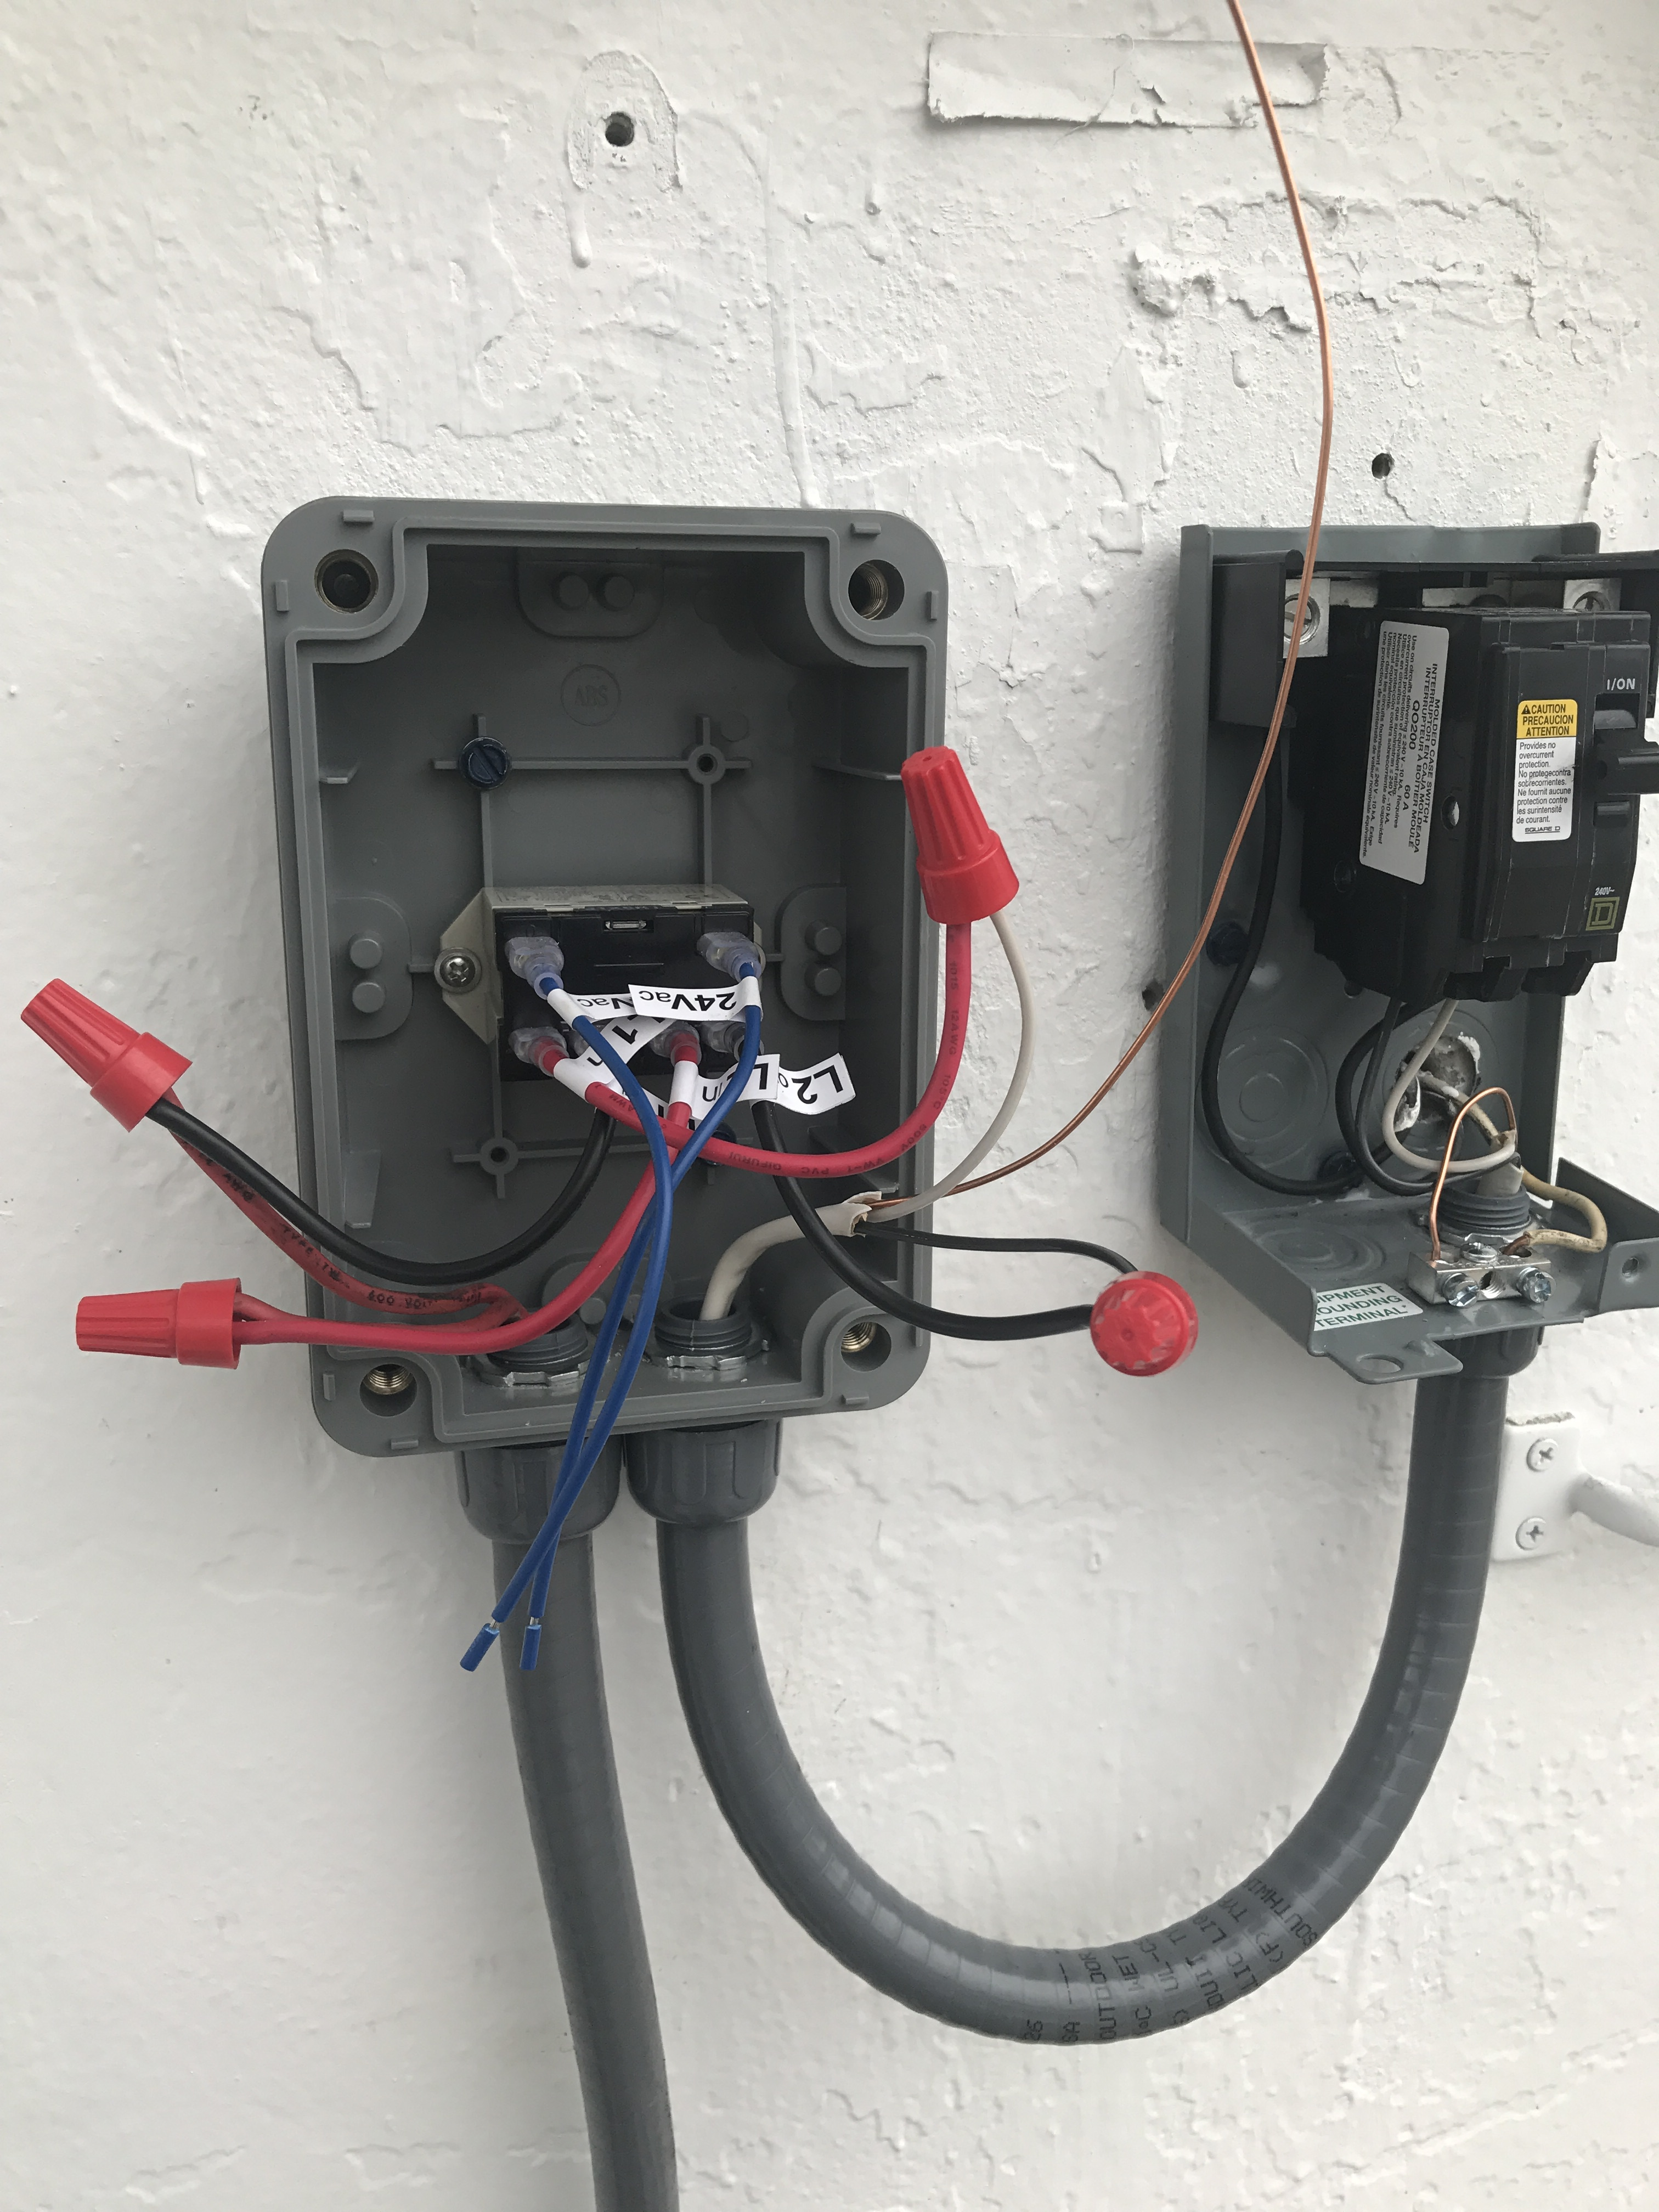 Irrigation Pump Start Relay Wiring Diagram from community.rachio.com